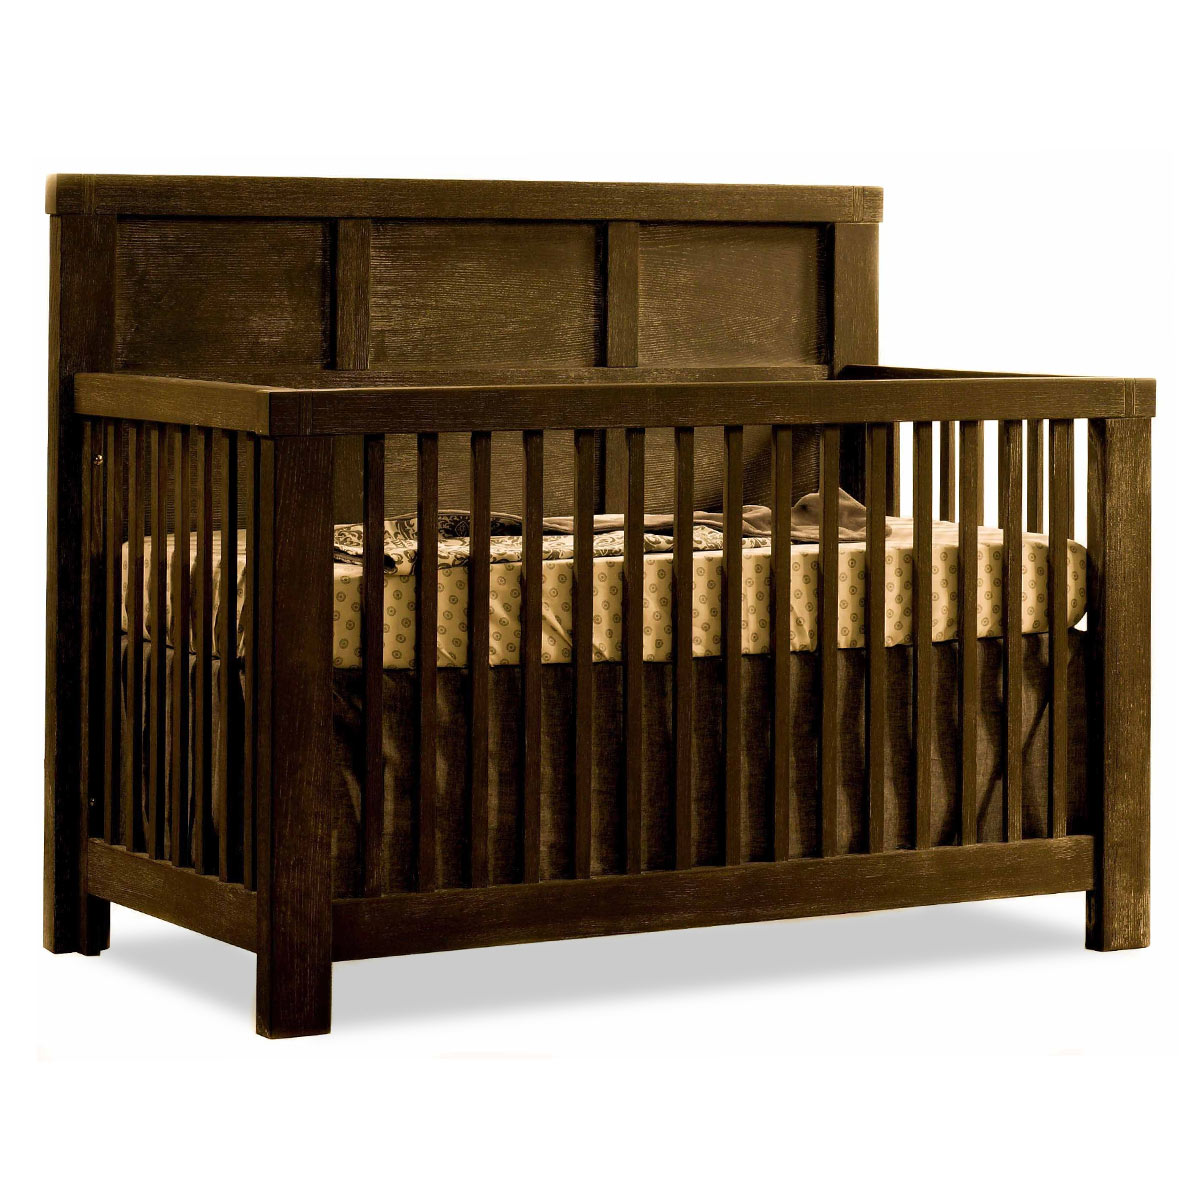 Natart Rustico 3 Piece Nursery Set 4 In 1 Convertible Crib Drawer Dresser And Double Mink Free